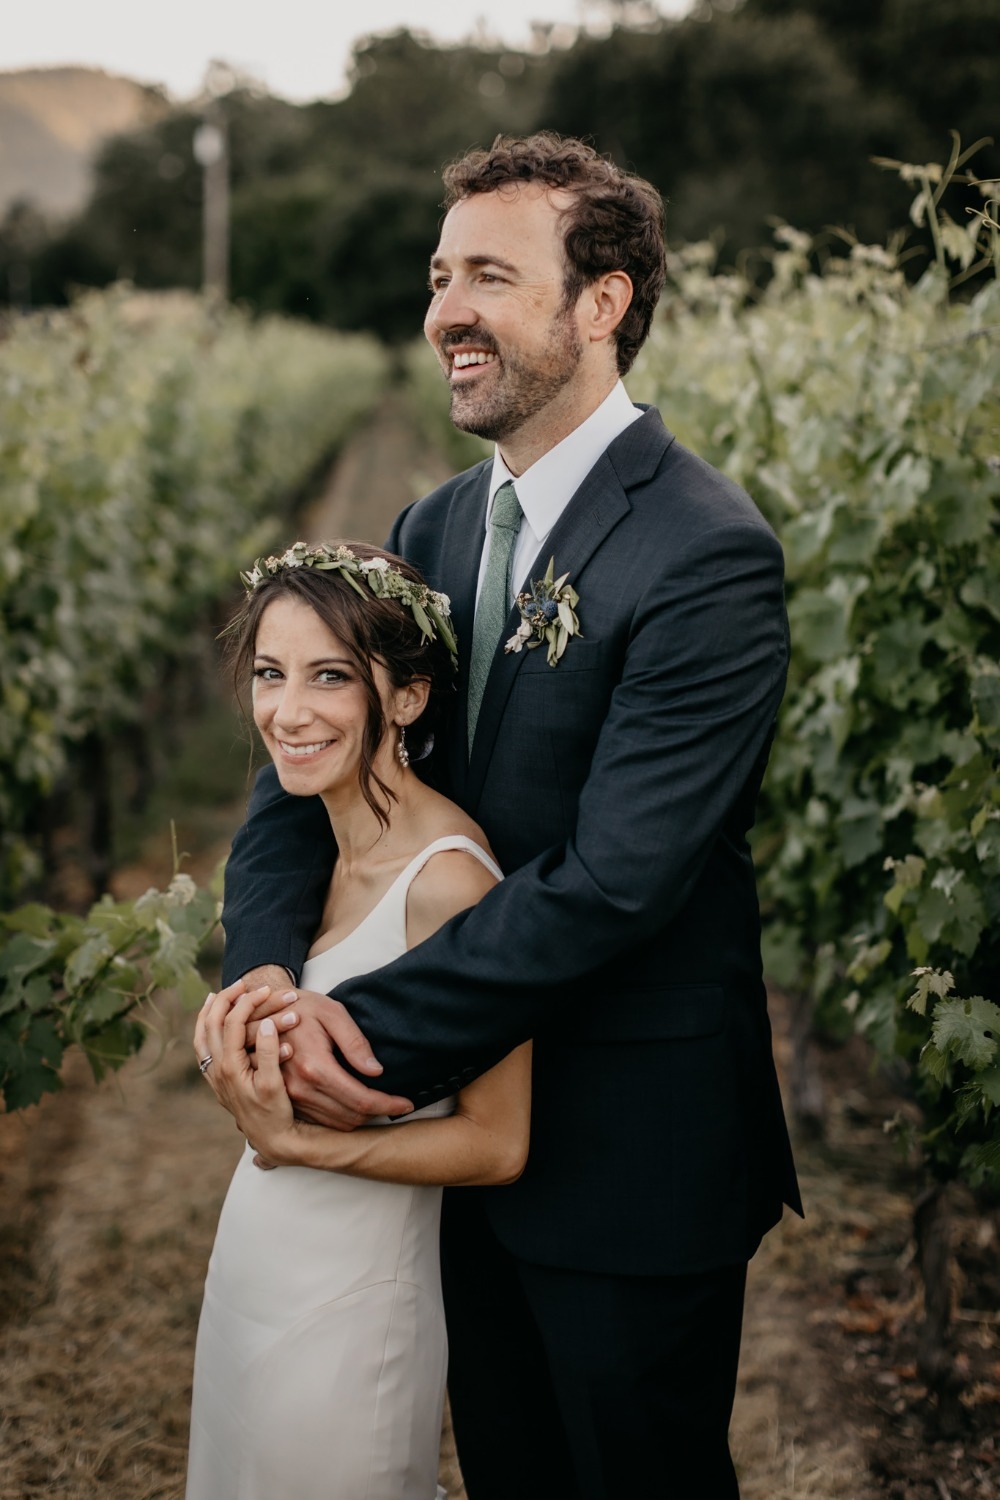 732135_a-romantic-family-vineyard-wedding-in.jpg